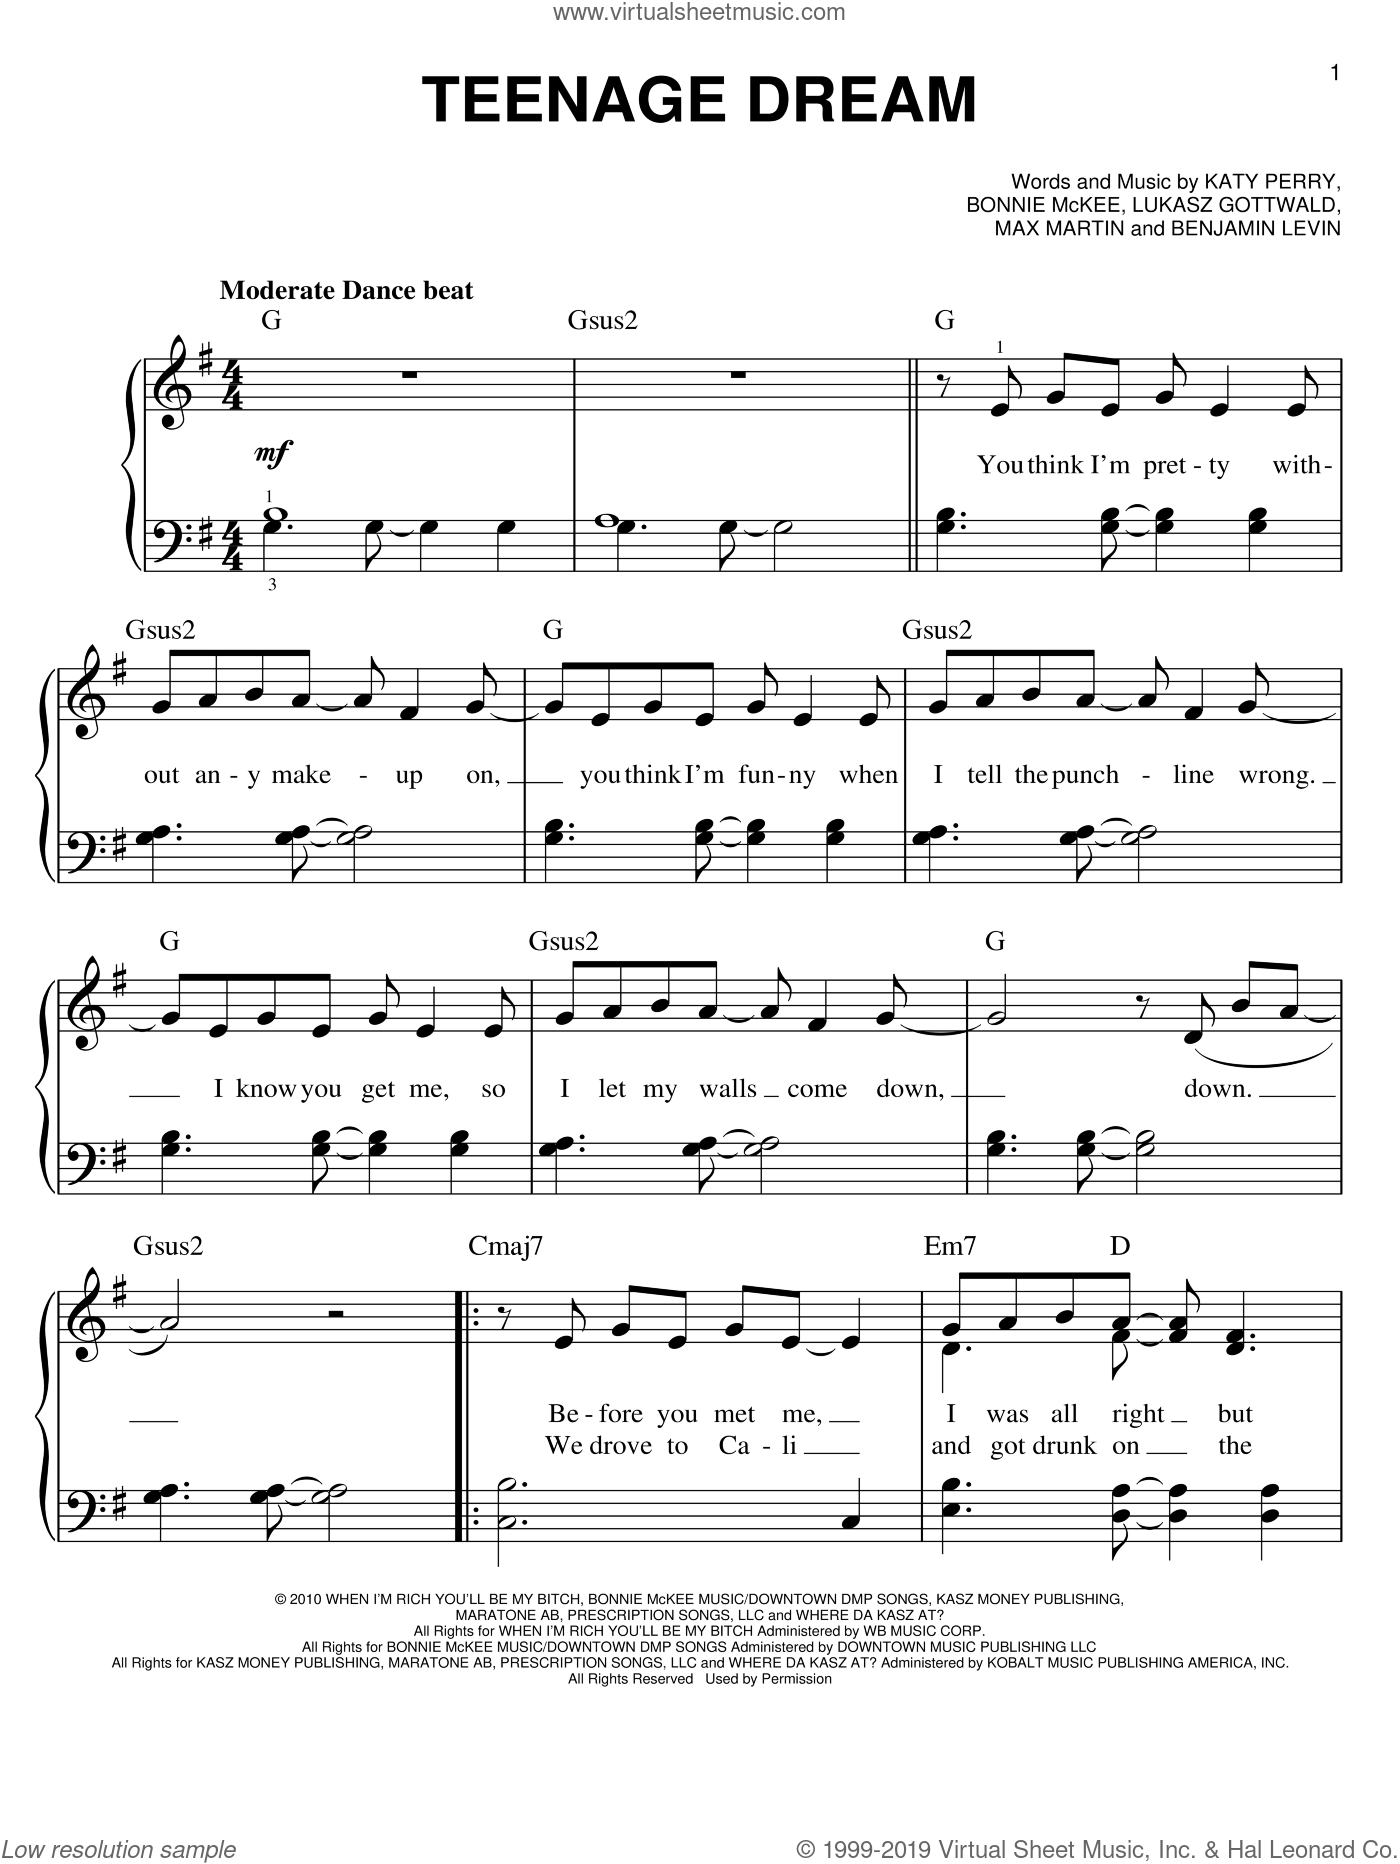 Teenage Dream sheet music for piano solo by Glee Cast, Miscellaneous, Benjamin Levin, Bonnie McKee, Katy Perry, Lukasz Gottwald and Max Martin, easy skill level